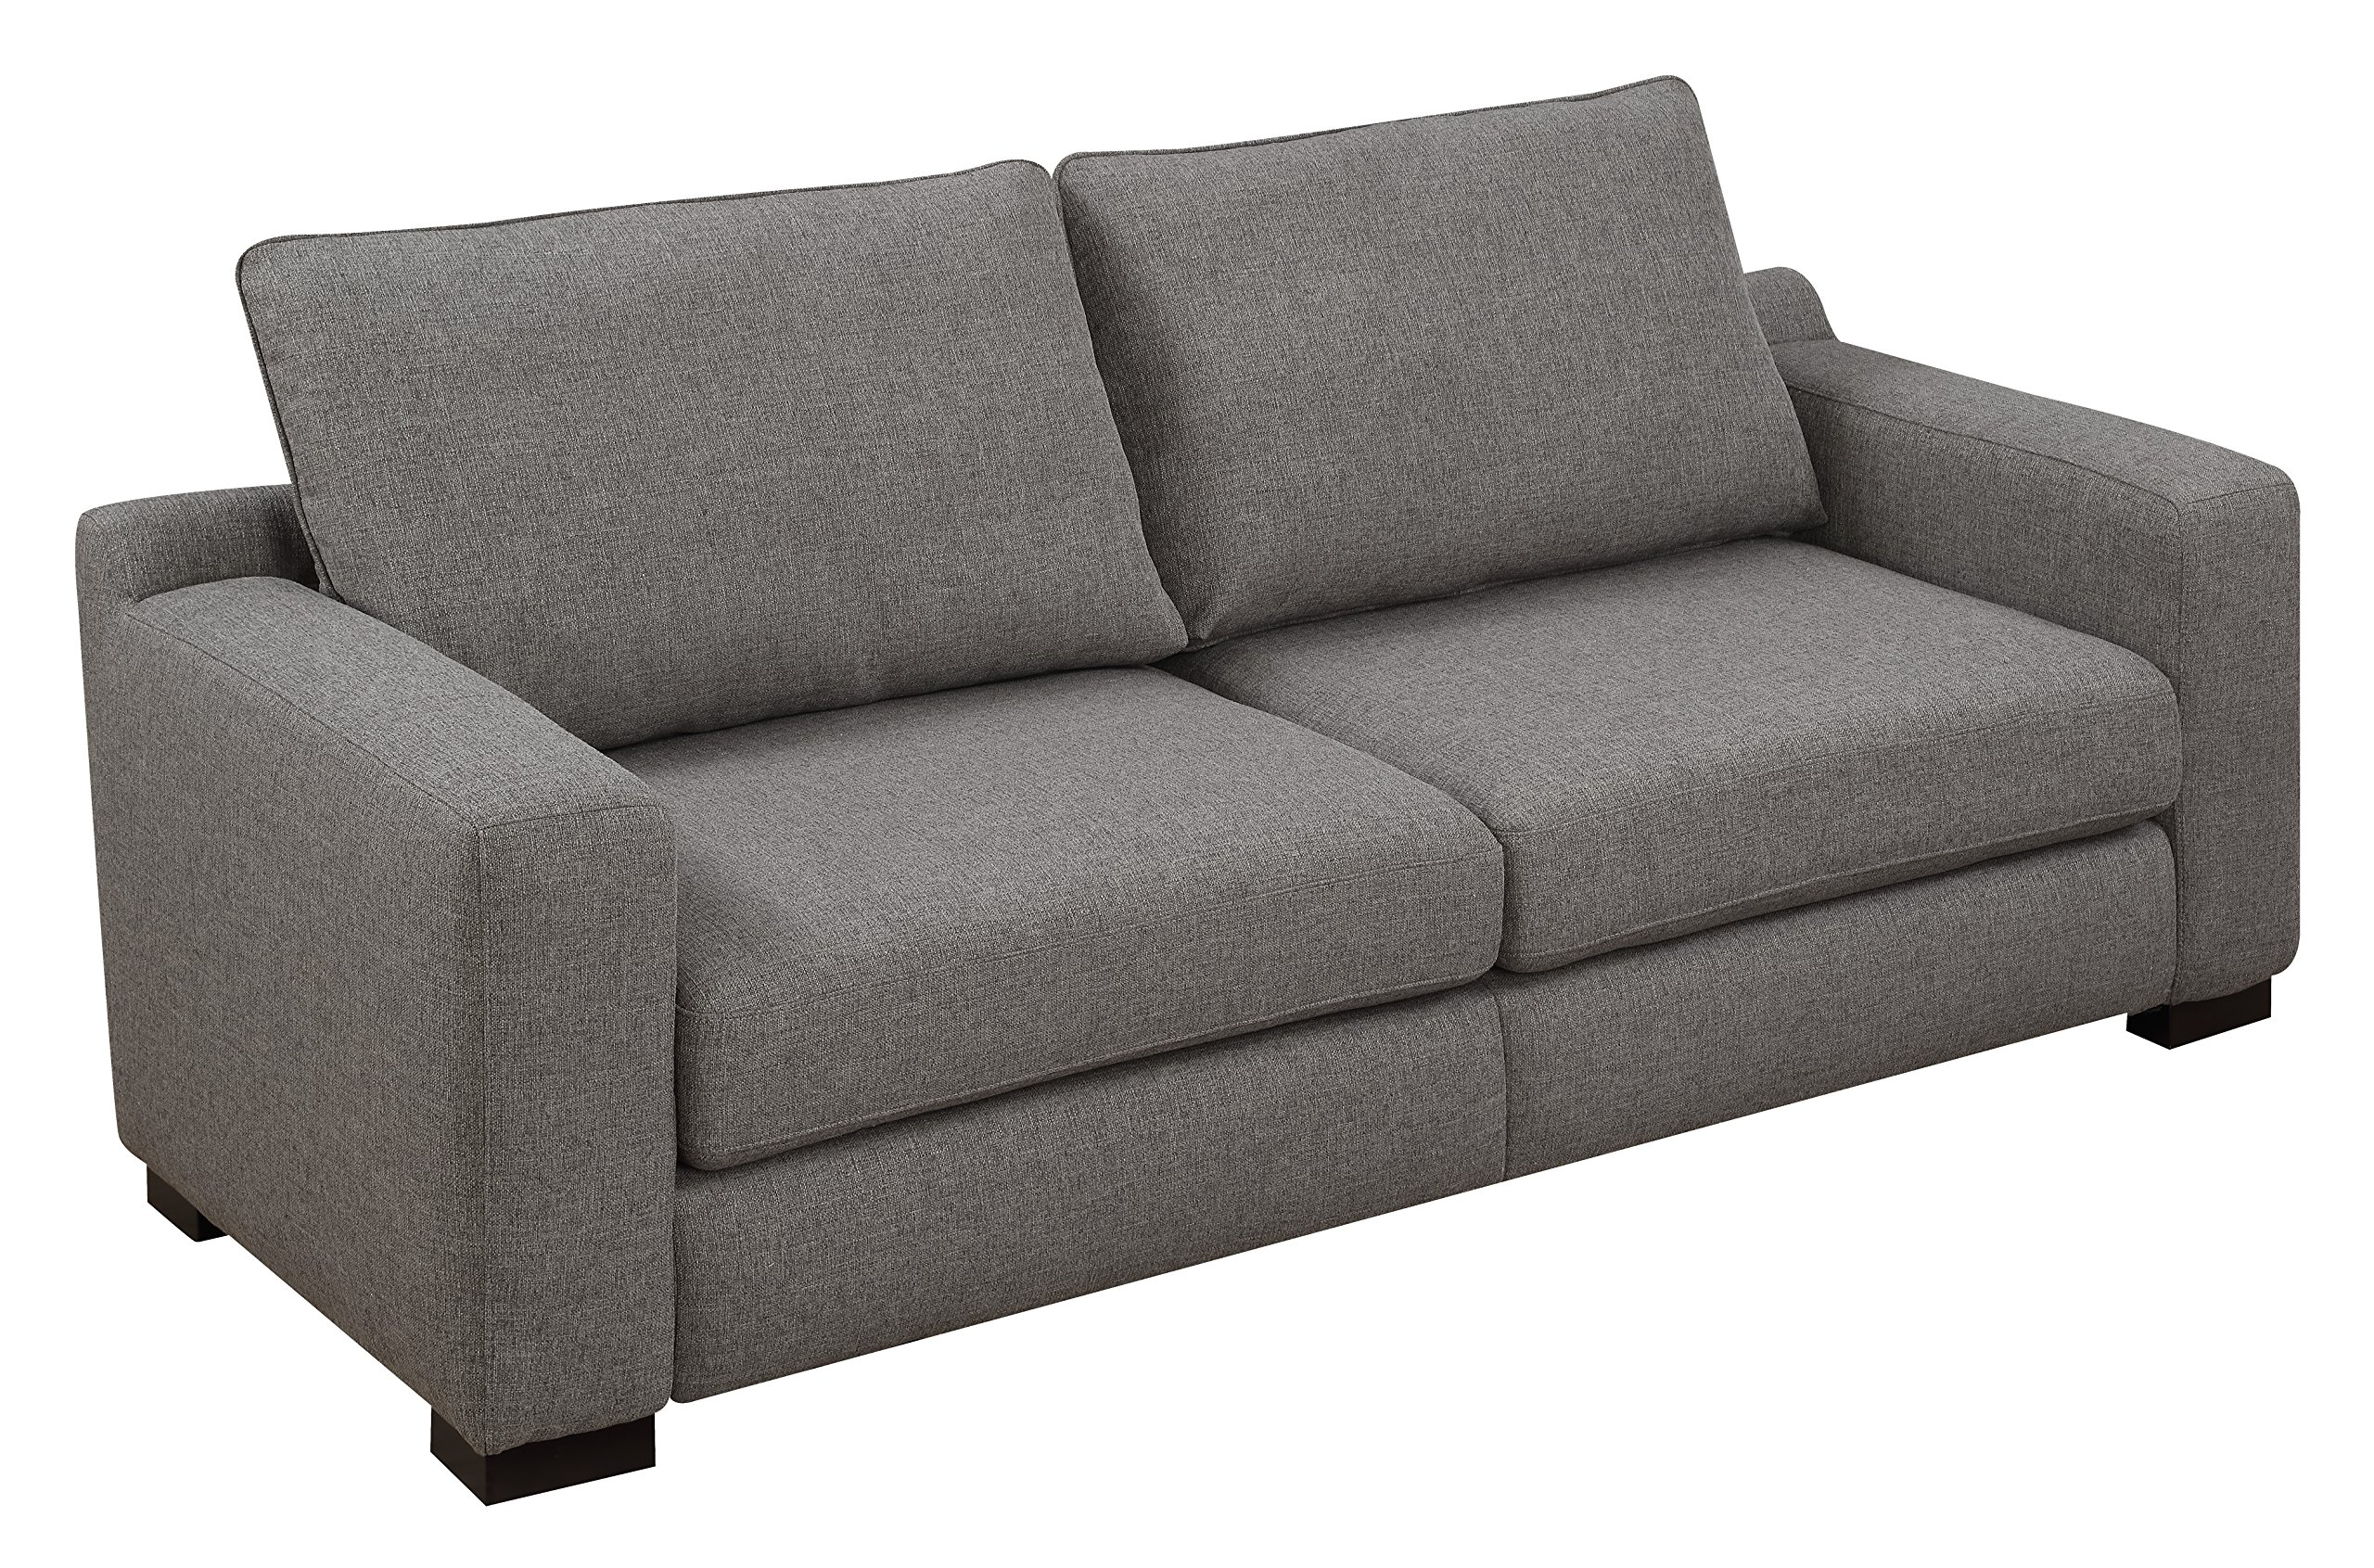 """Serta Geneva 78"""" Sofa in Cozy Gray - Perfect sofa for small living spaces Trendy wide track Arm and low Back Choose from two neutral colors to match your decor - sofas-couches, living-room-furniture, living-room - A1RKGIq7OOL -"""